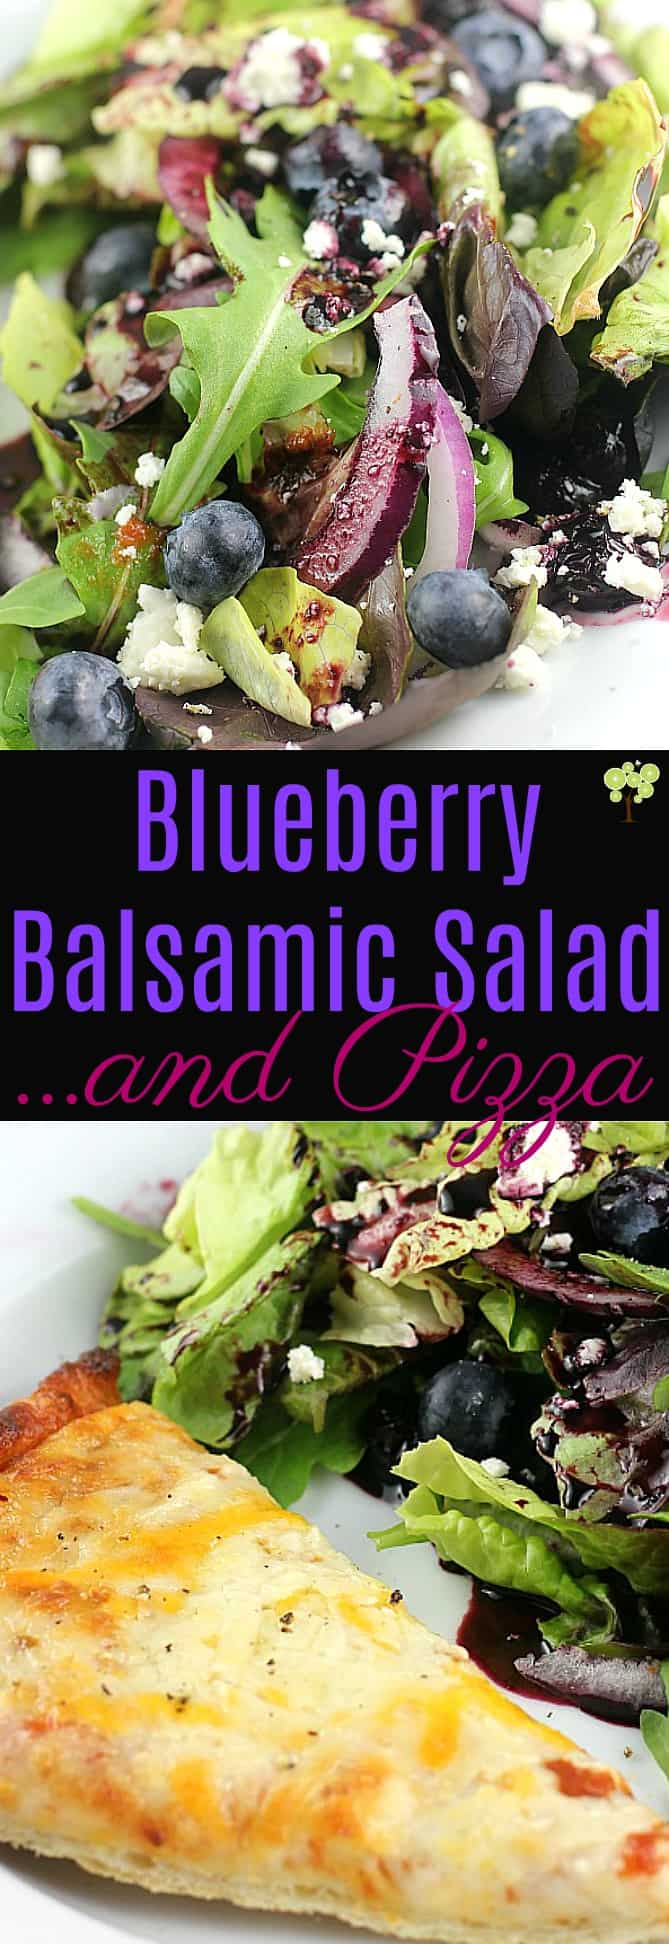 Blueberry Balsamic Salad ...and Pizza #BaronessPatches #ad